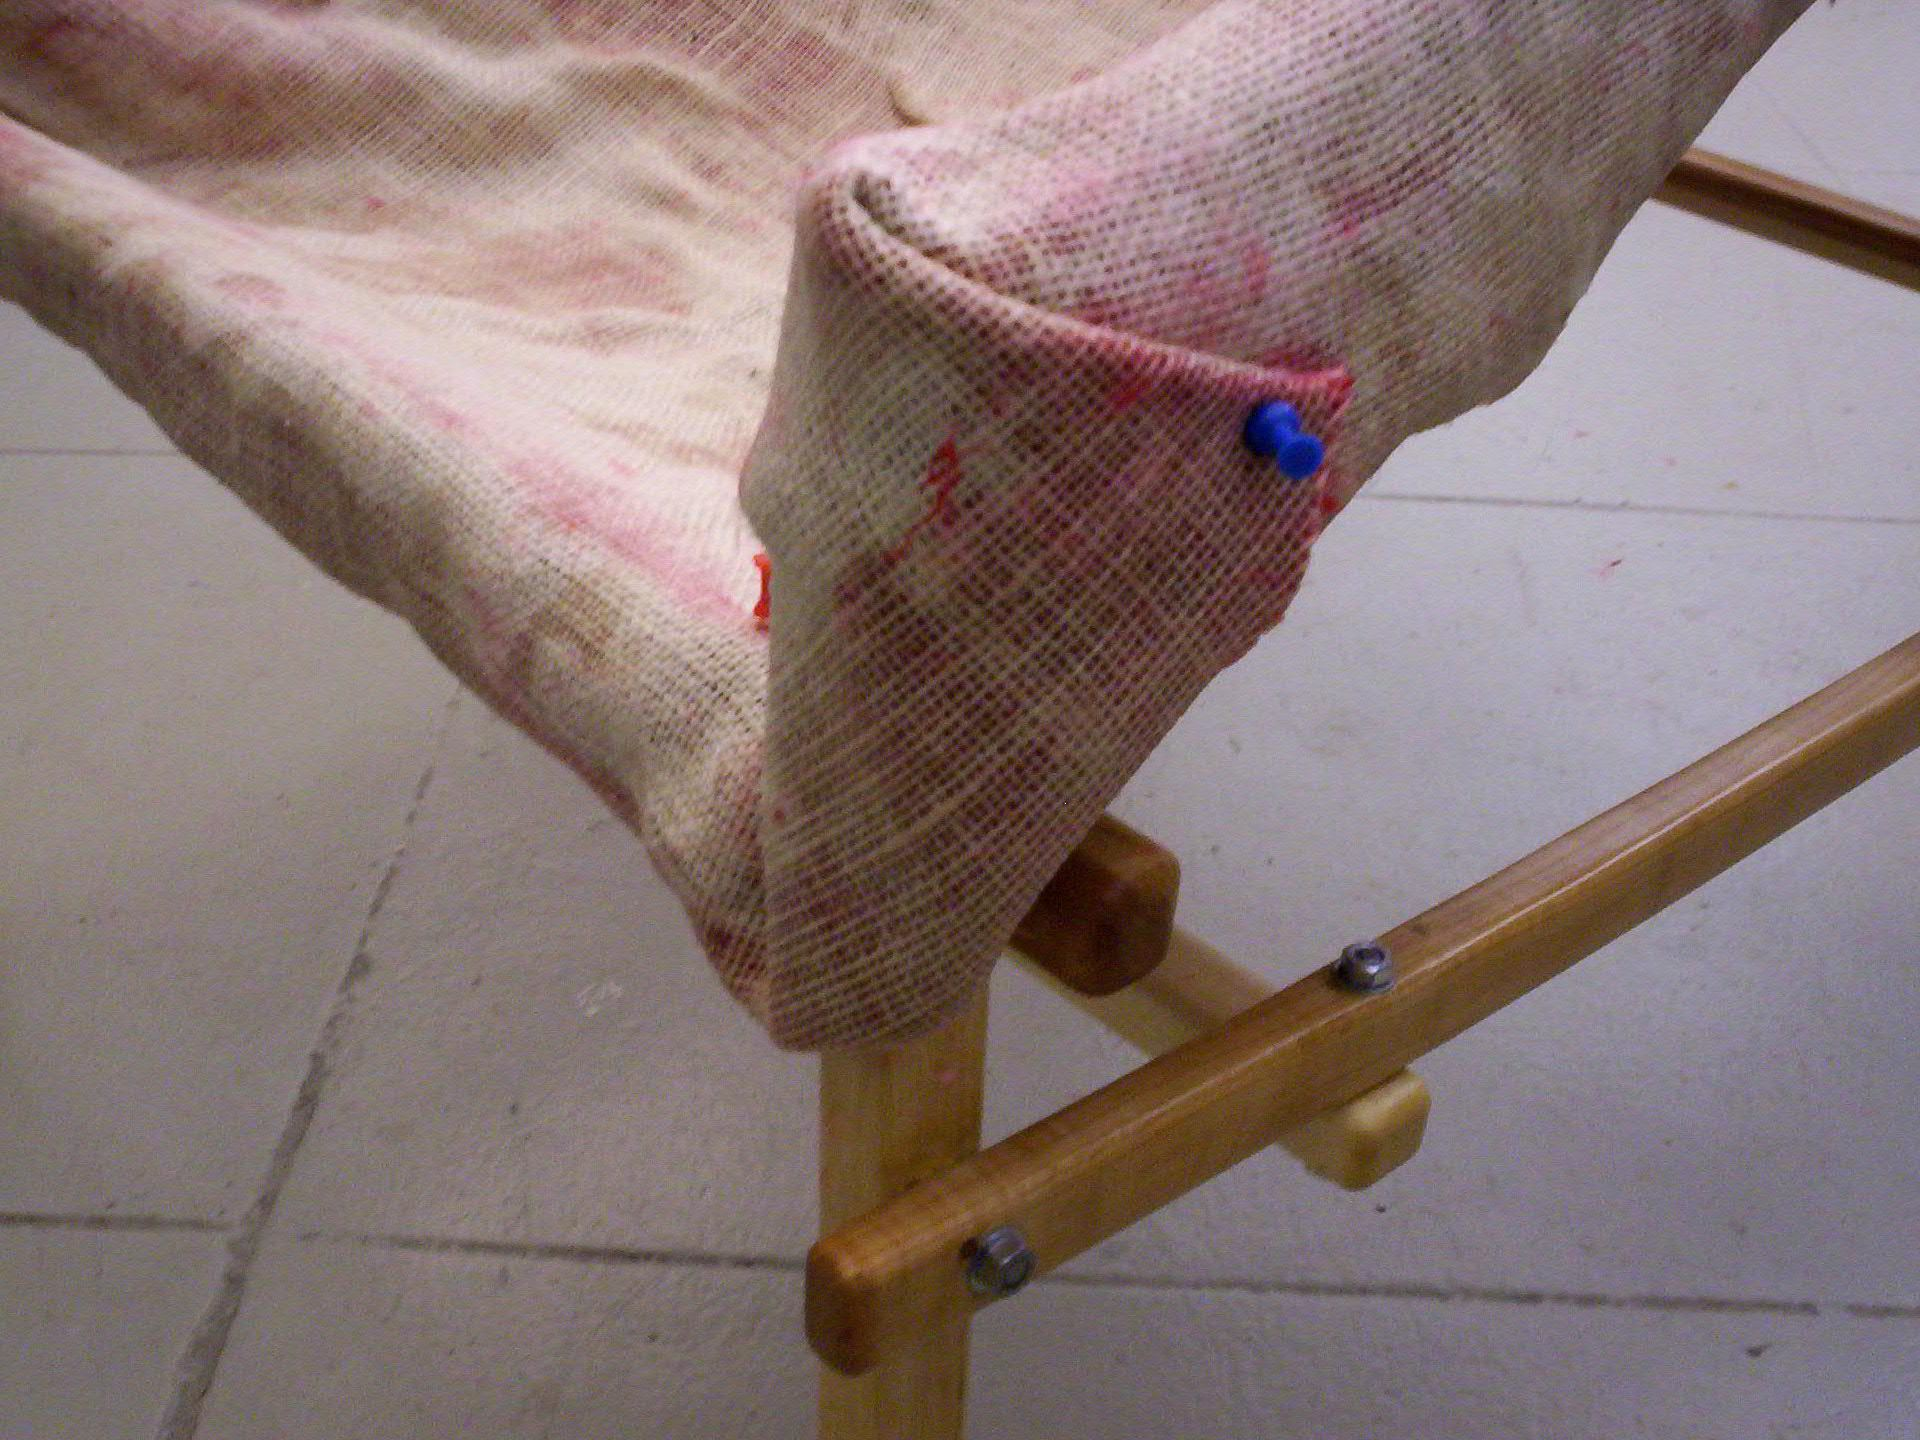 Process: Design and construct affordable, expressive and non-toxicfurniture.